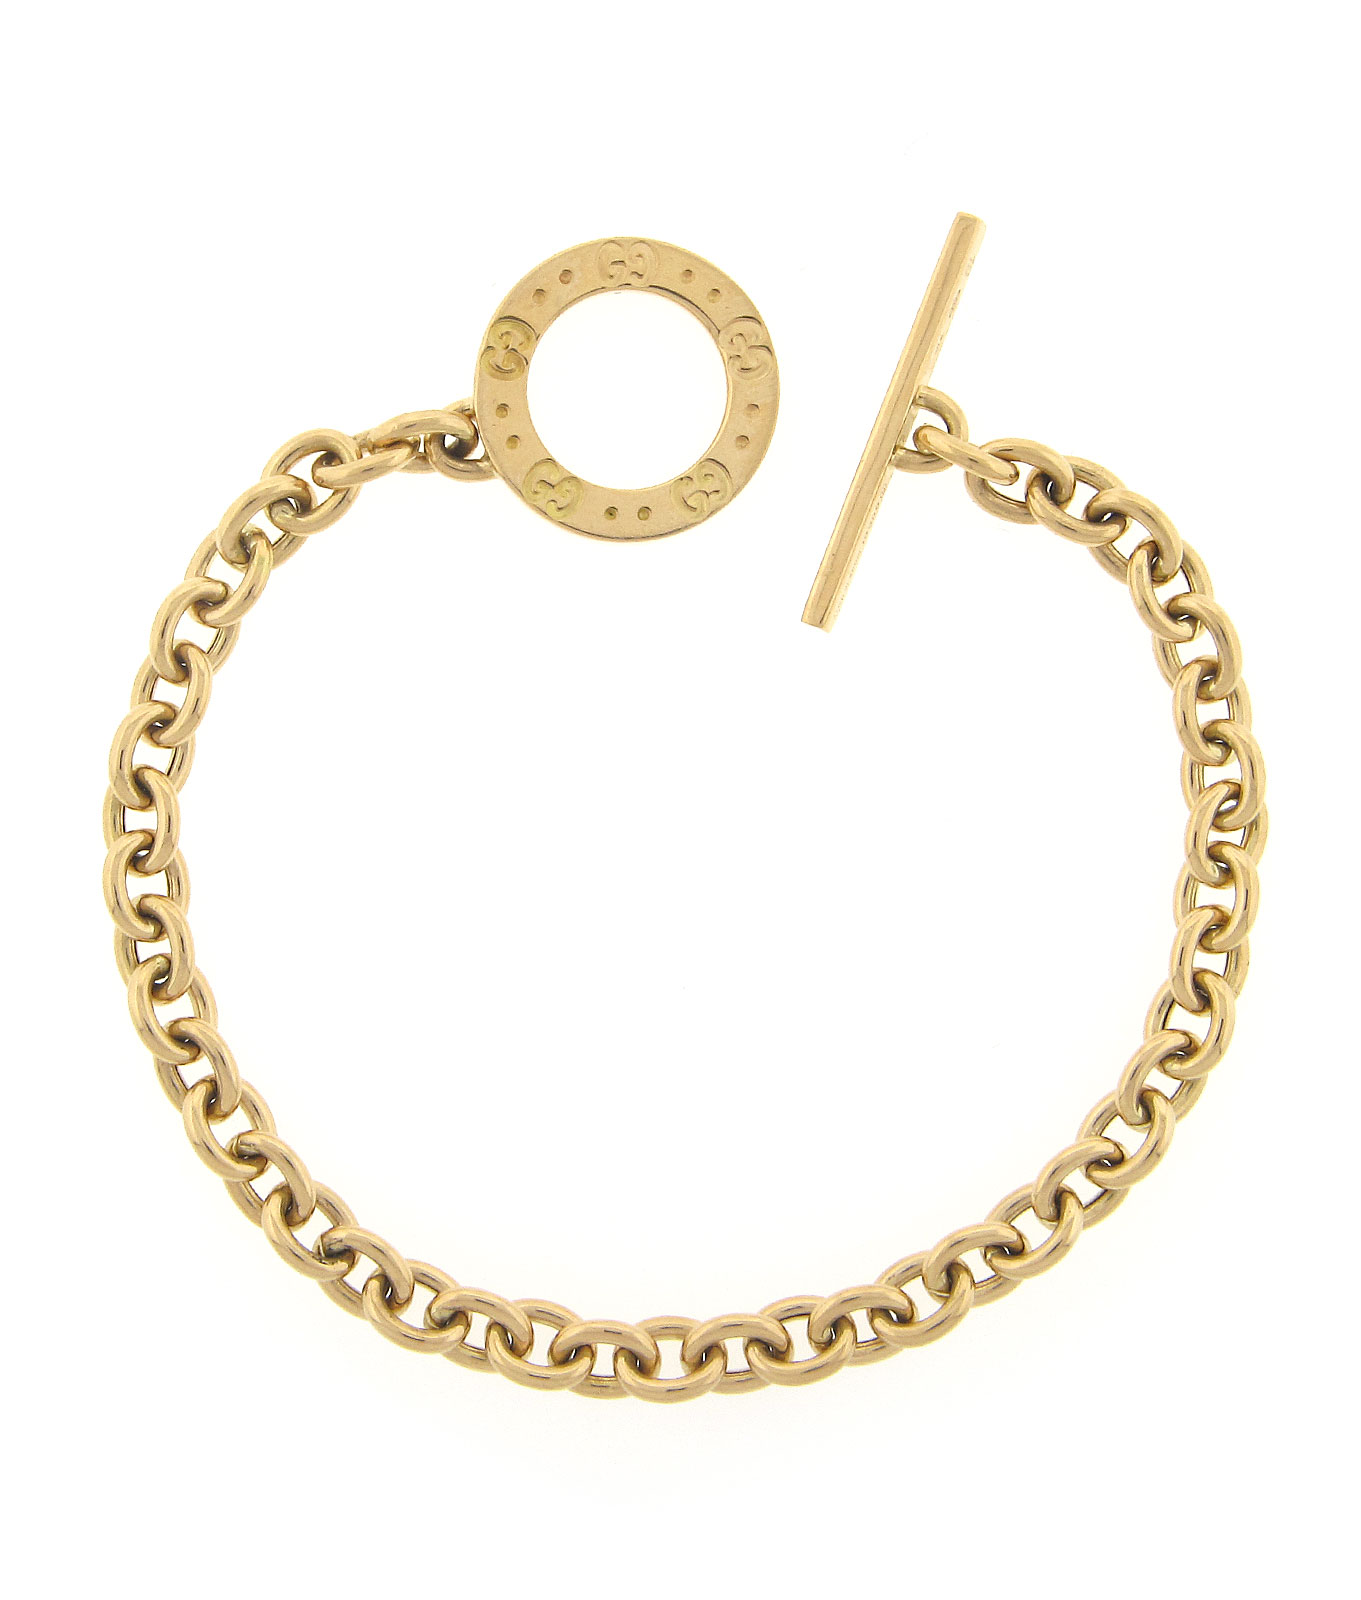 Toggle Charm Bracelet: Gucci 18K Yellow Gold Link Charm Bracelet W/Toggle Clasp